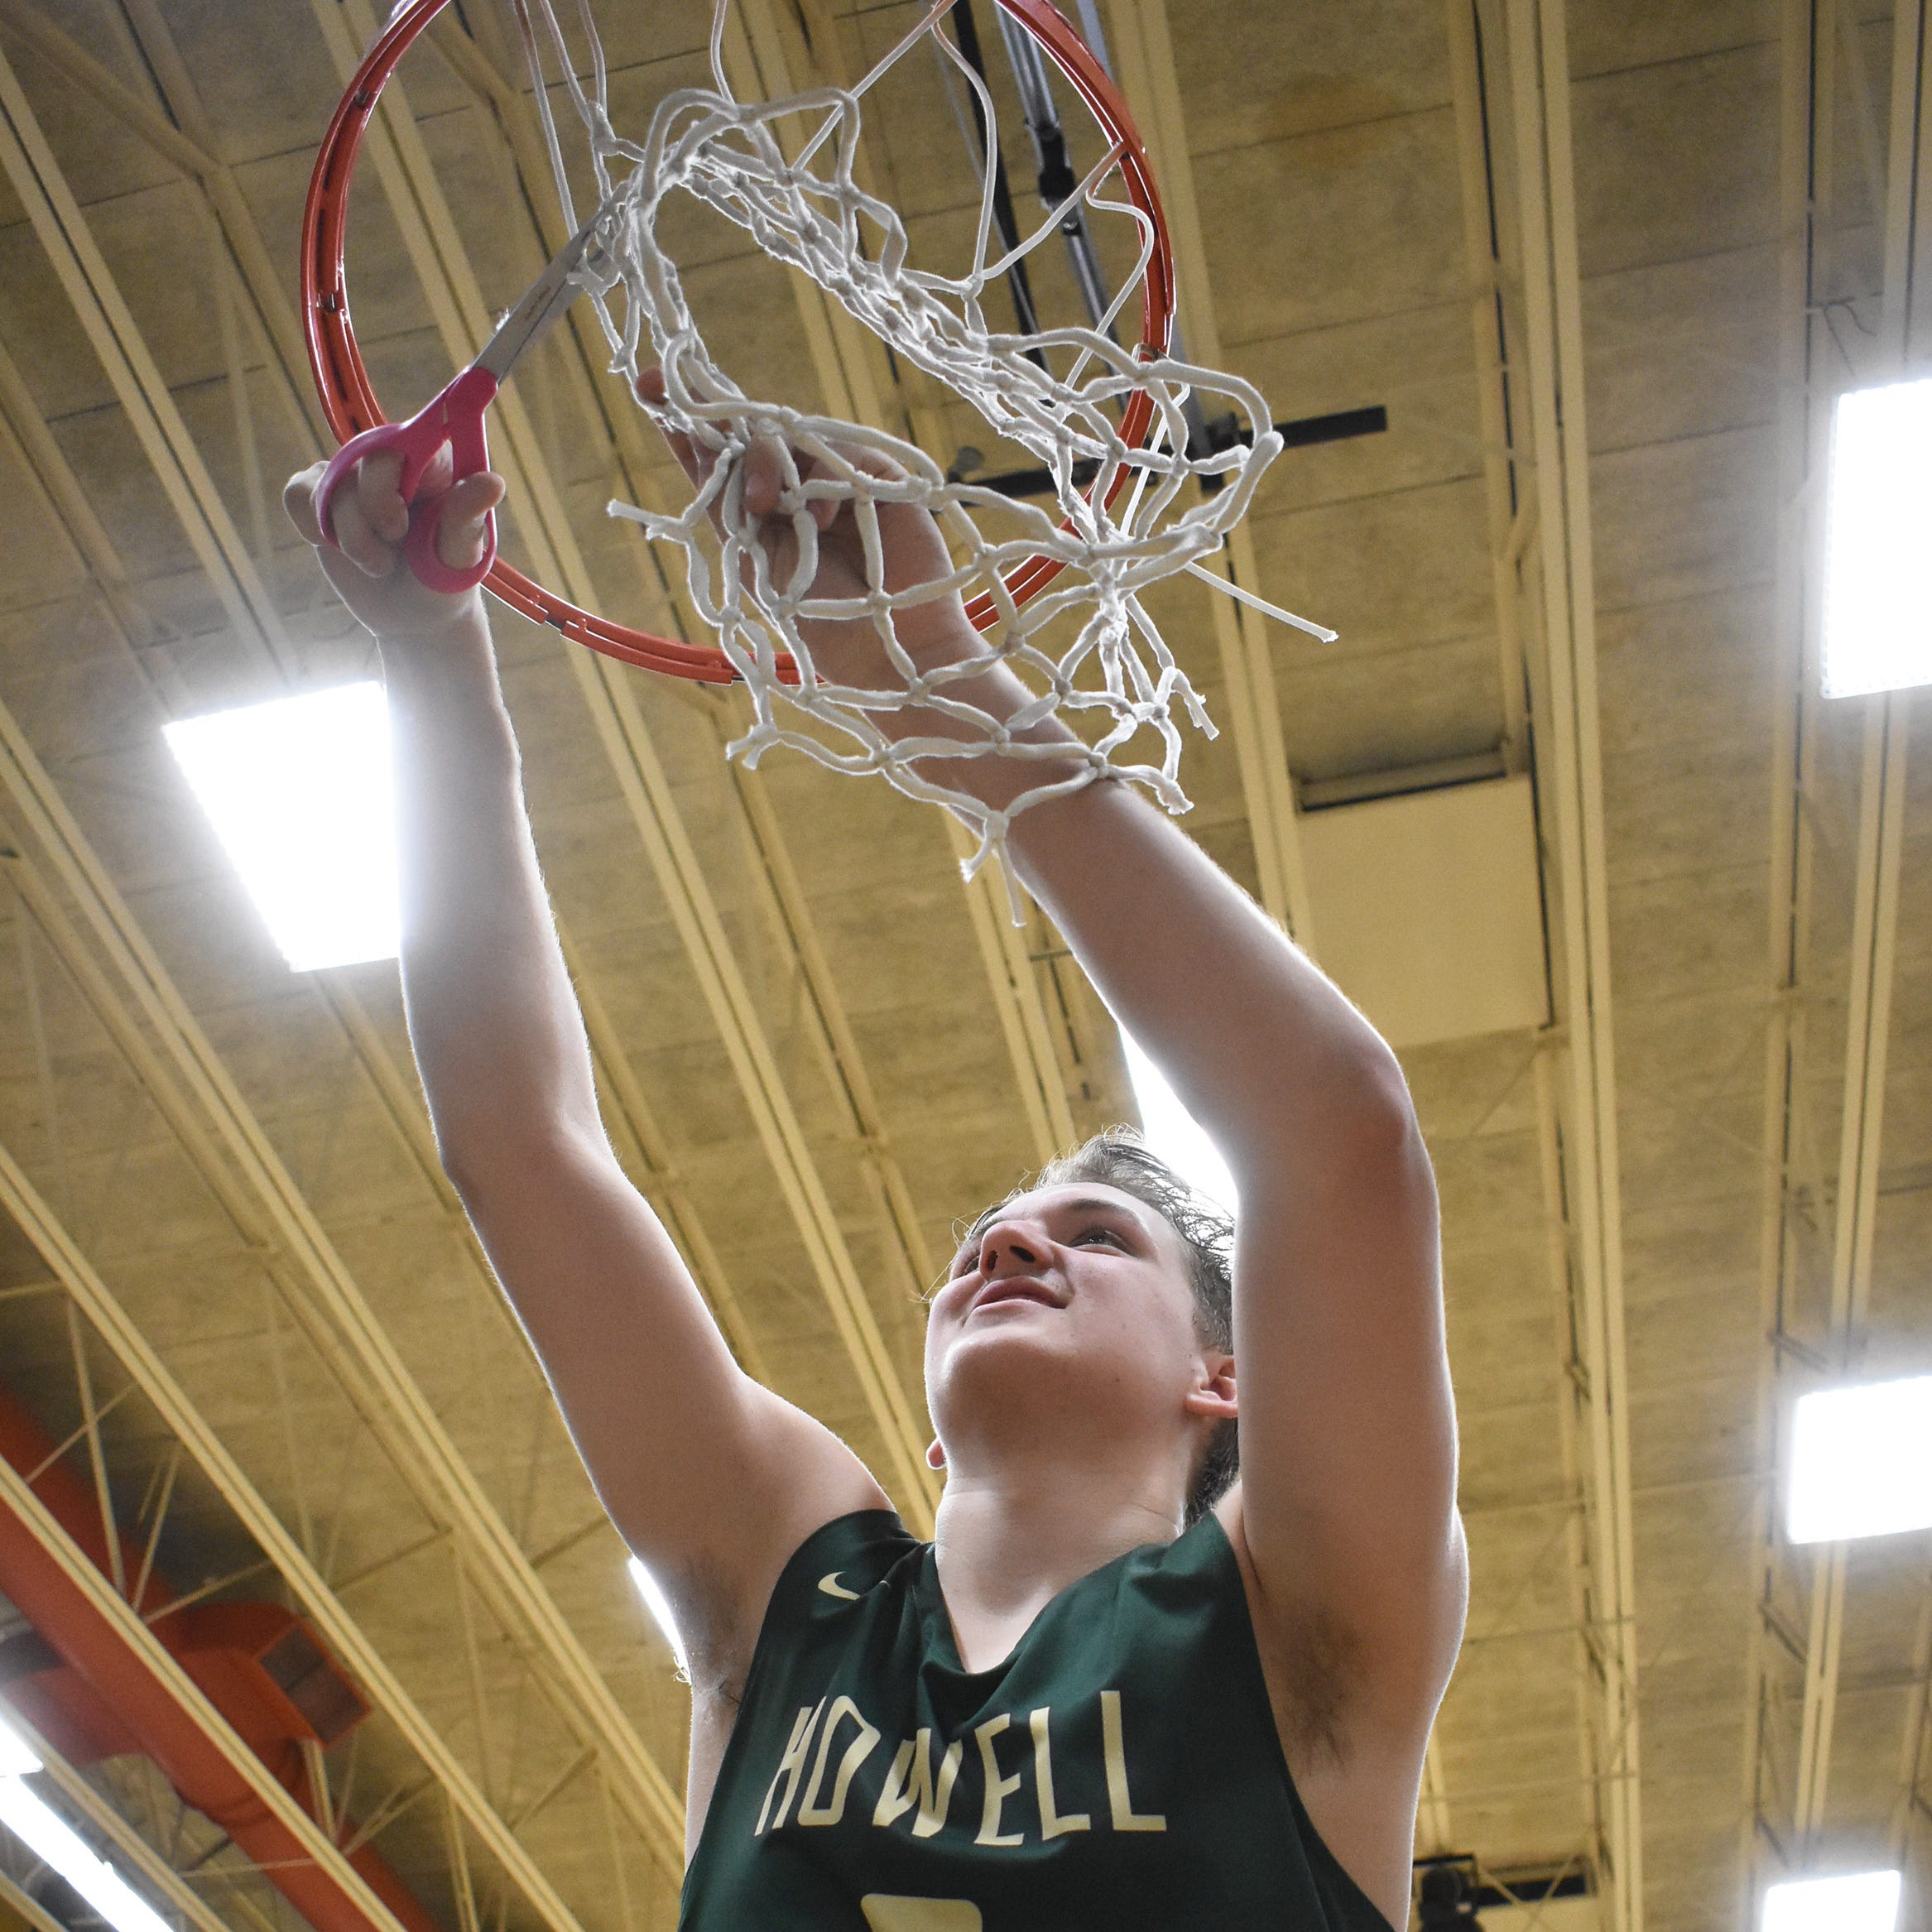 Howell 'not satisfied yet' heading into basketball quarterfinal